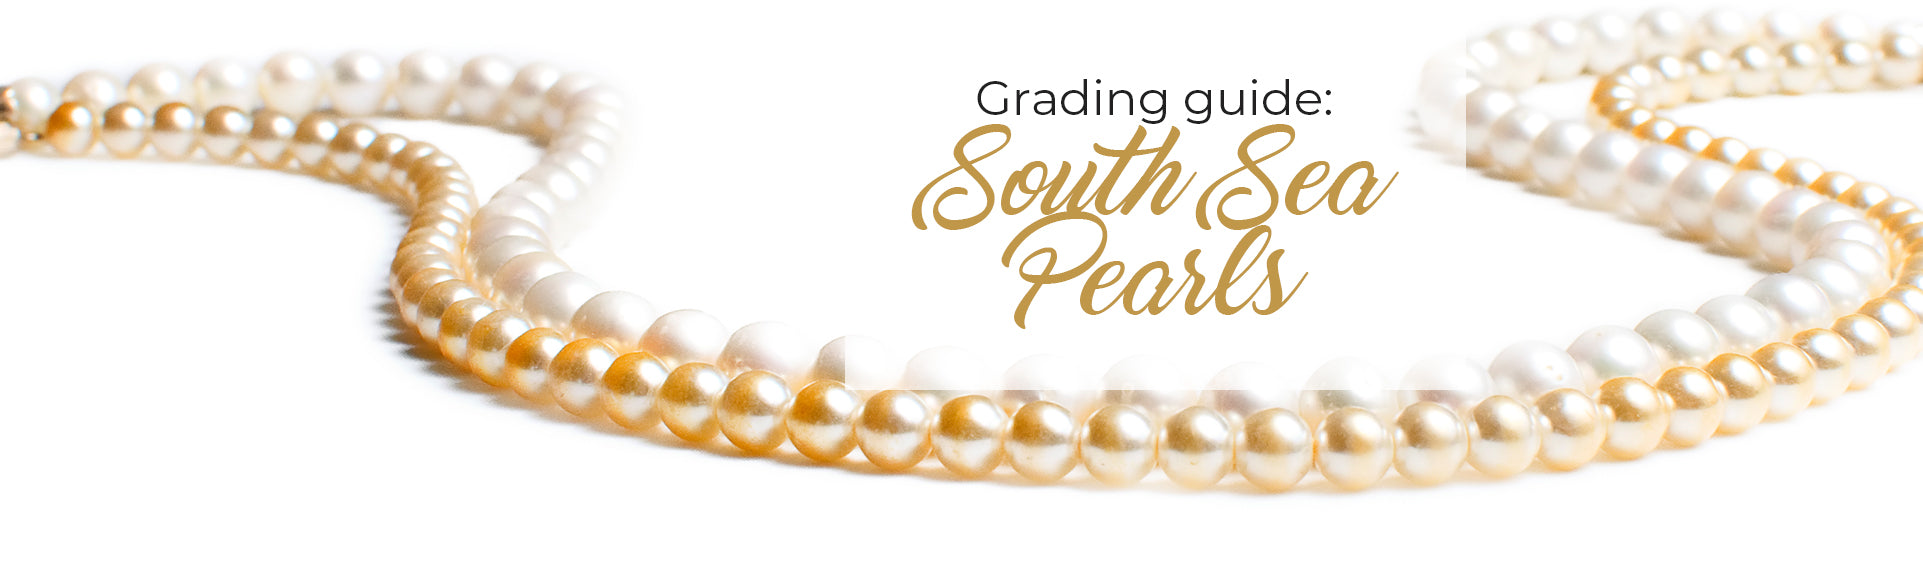 south sea pearls grading guide